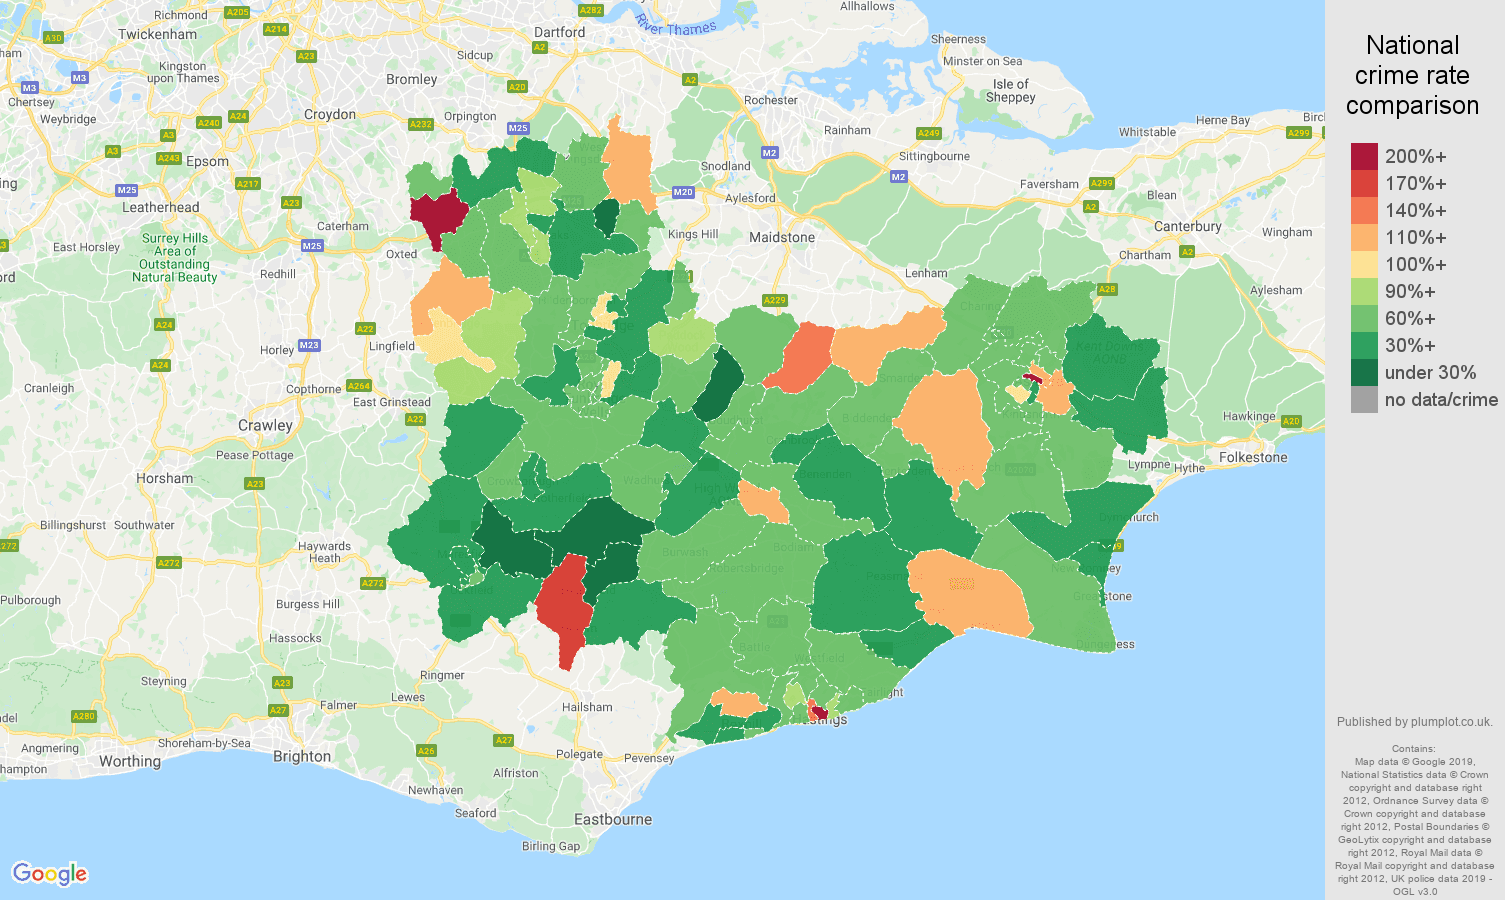 Tonbridge other theft crime rate comparison map